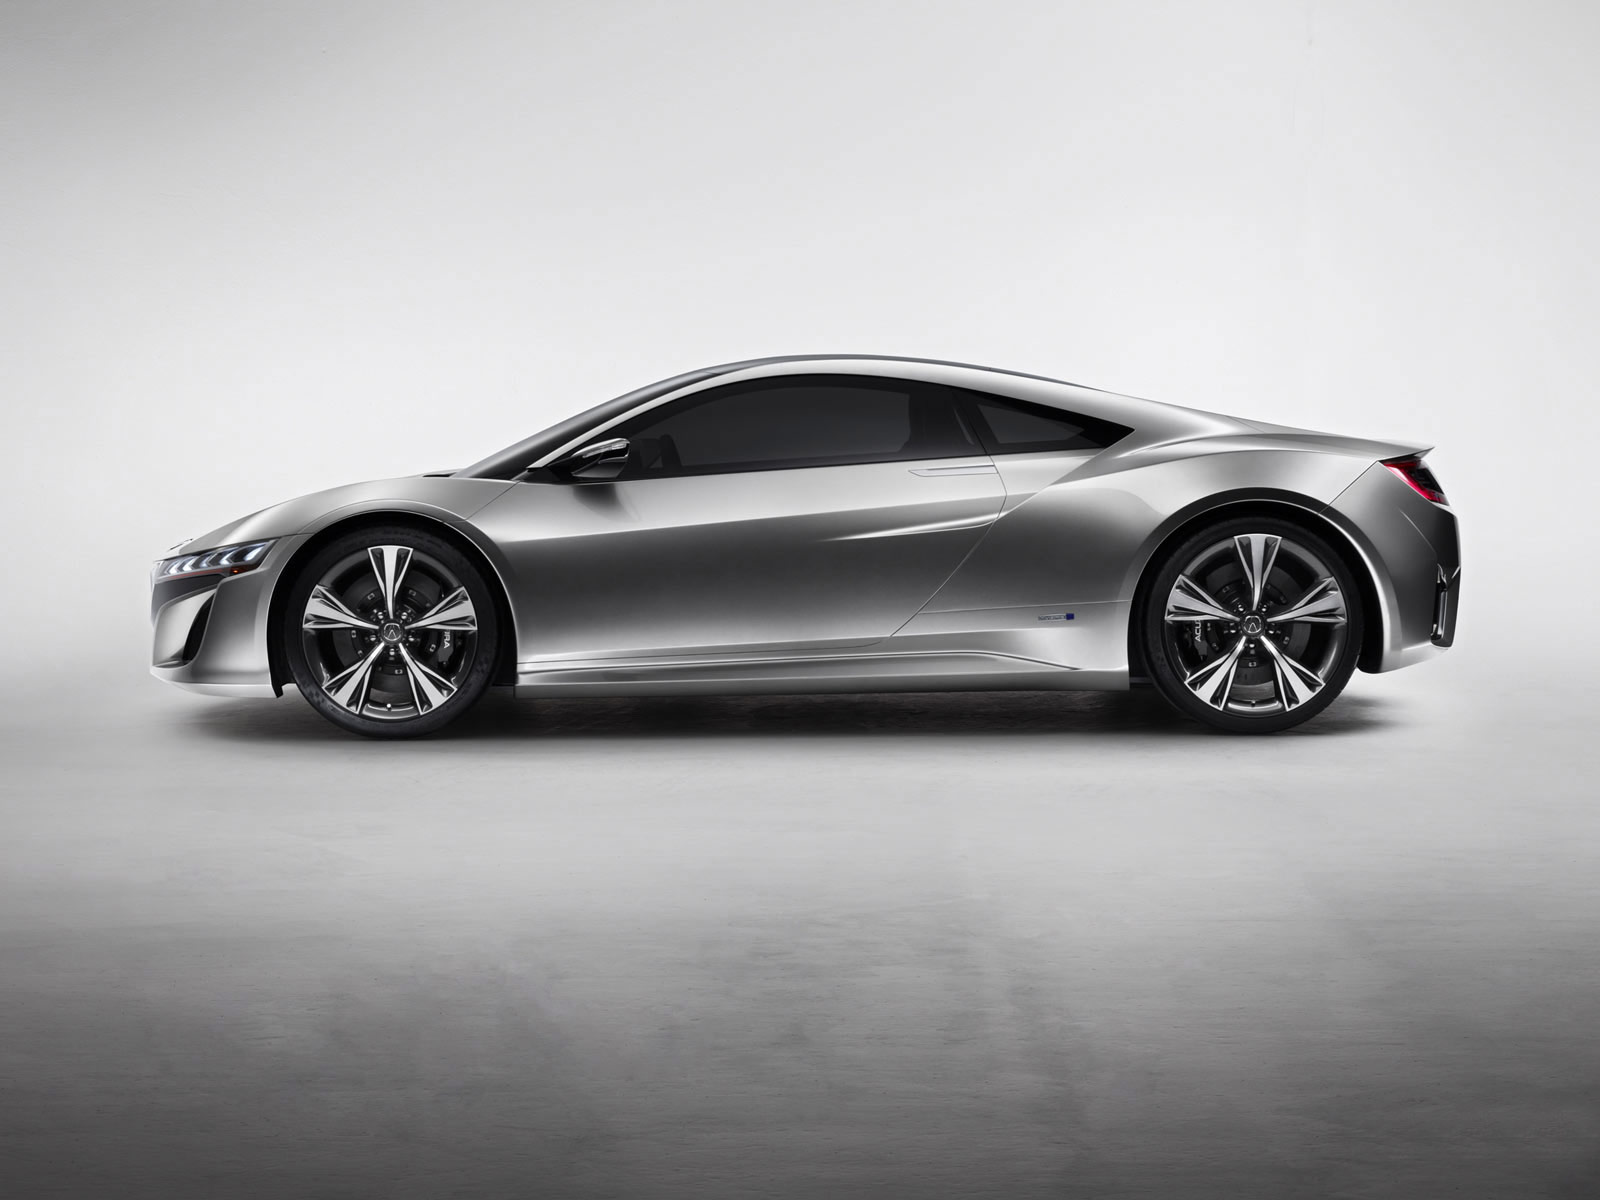 2012 Acura Nsx Concept Wallpapers Auto Cars Concept